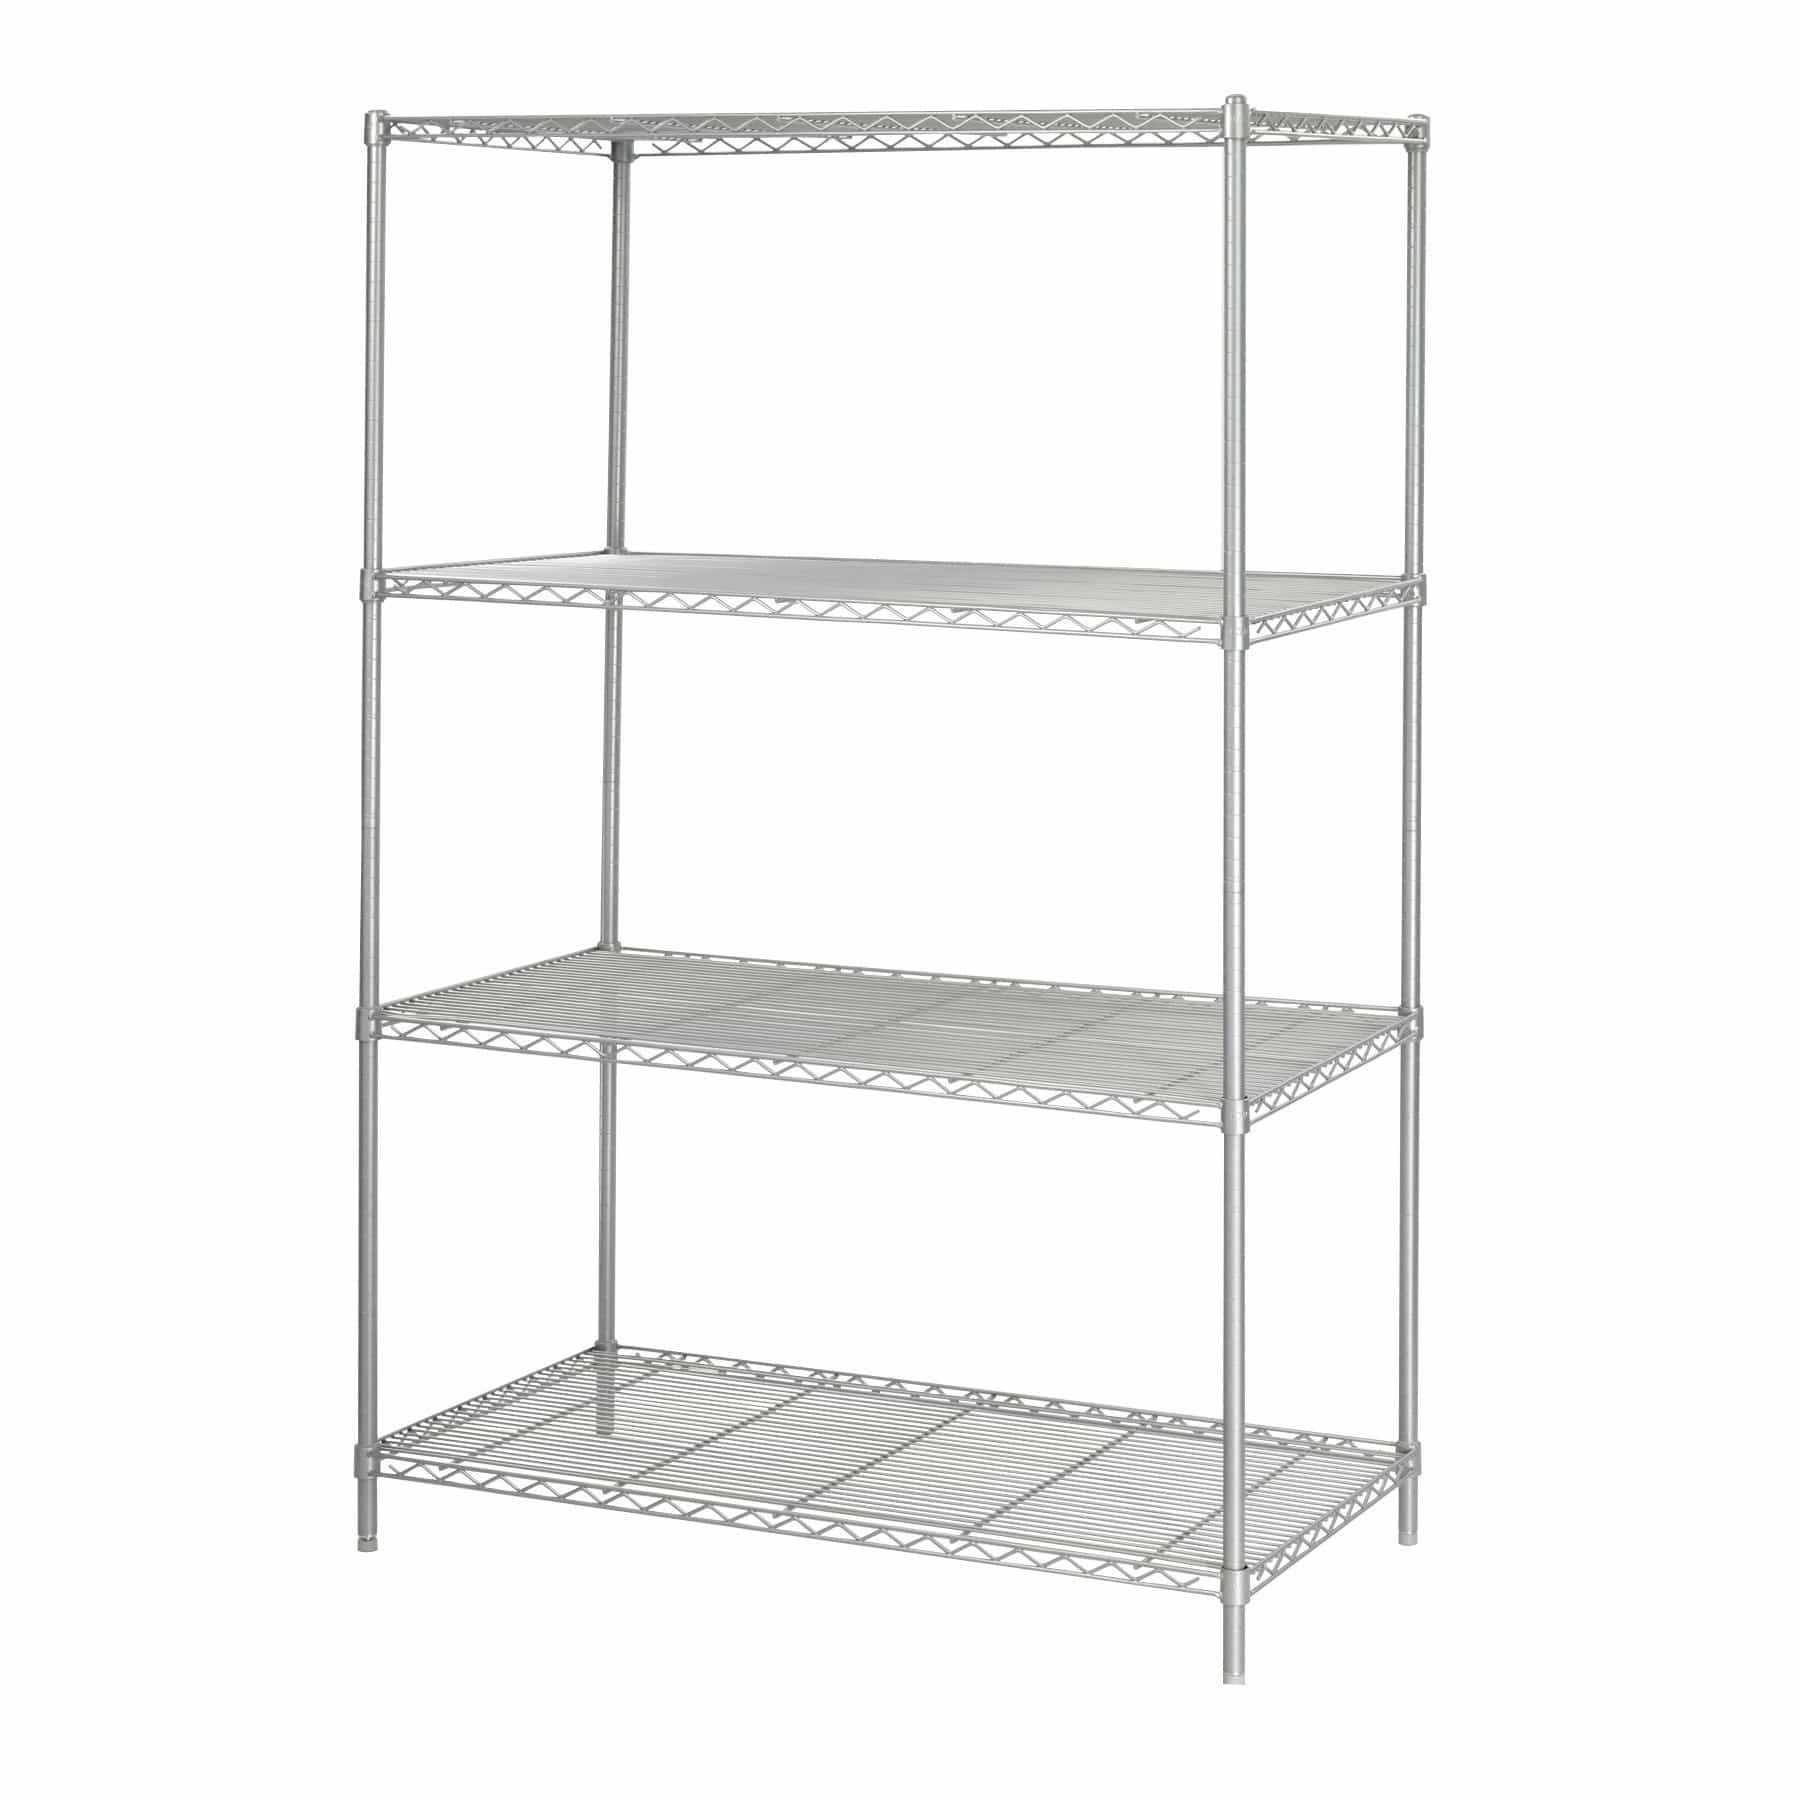 bedinhome - Industrial 48 In x 24 In powder coat finish welded wire Shelving storage shelf - Safco - Wire Shelving